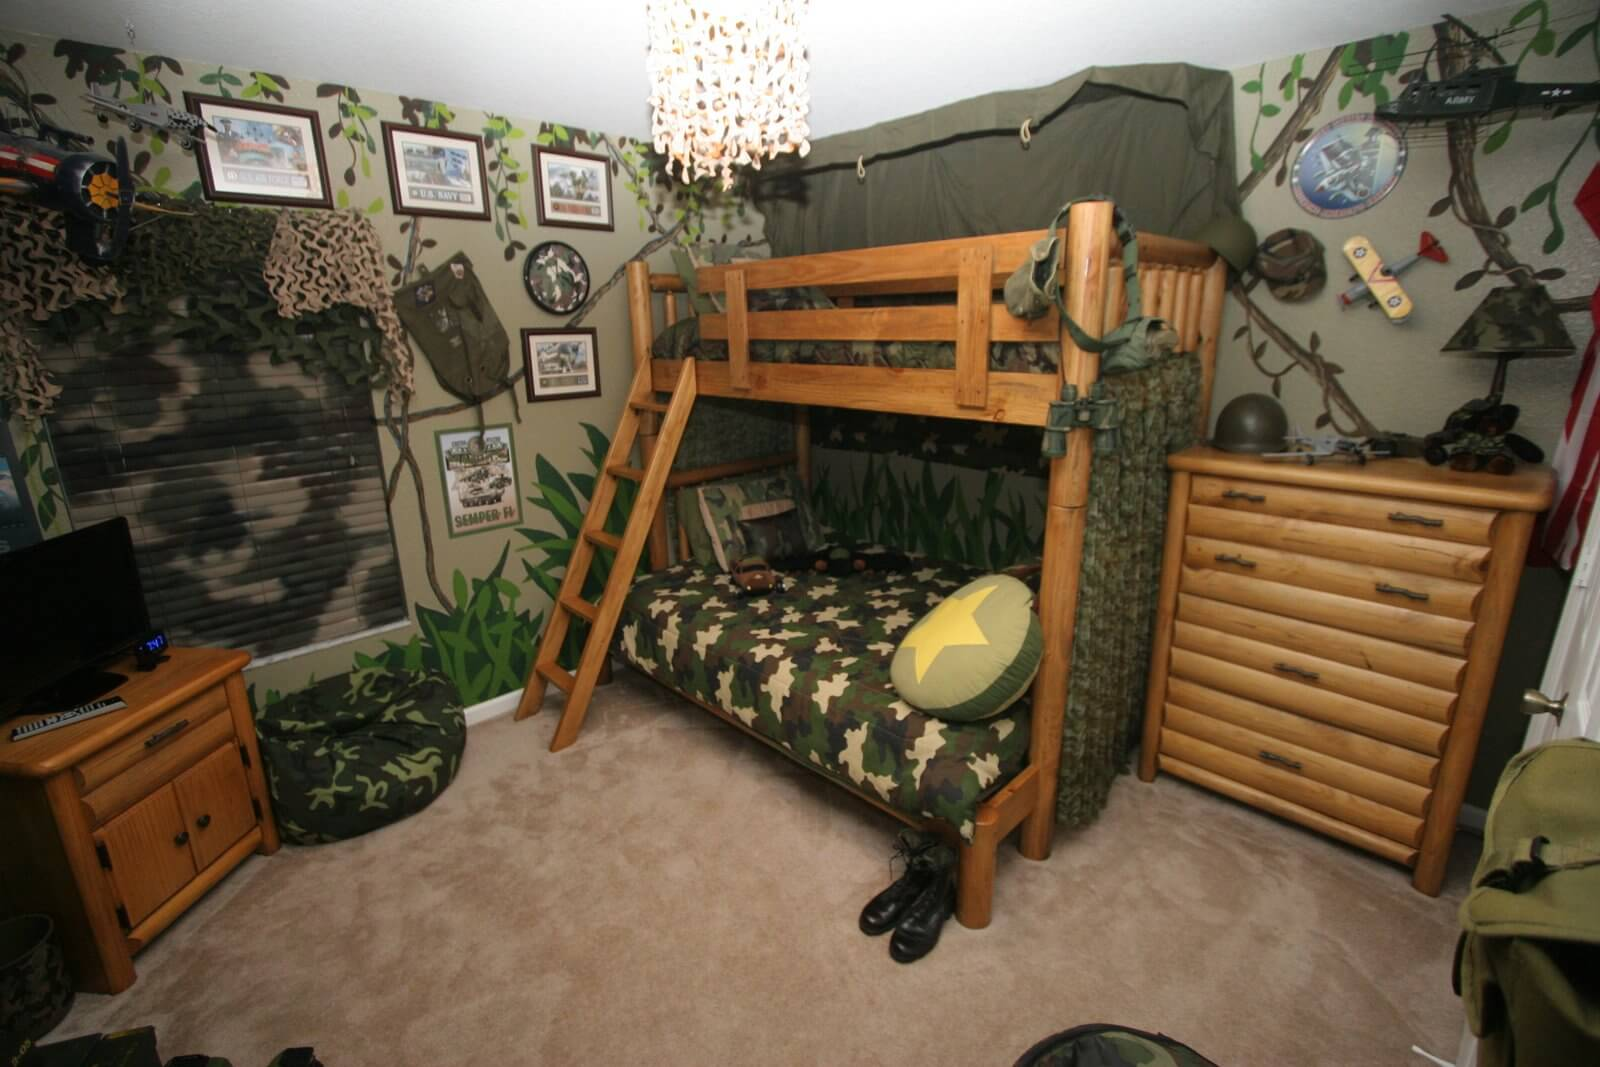 surprising-cool-boys-bedroom-design-with-army-theme-wtih-level-bunks-cool-wooden-log-drawer-design-forest-wallpaper-and-brown-fur-carpet-flooring-for-teenager-boys-bedroom